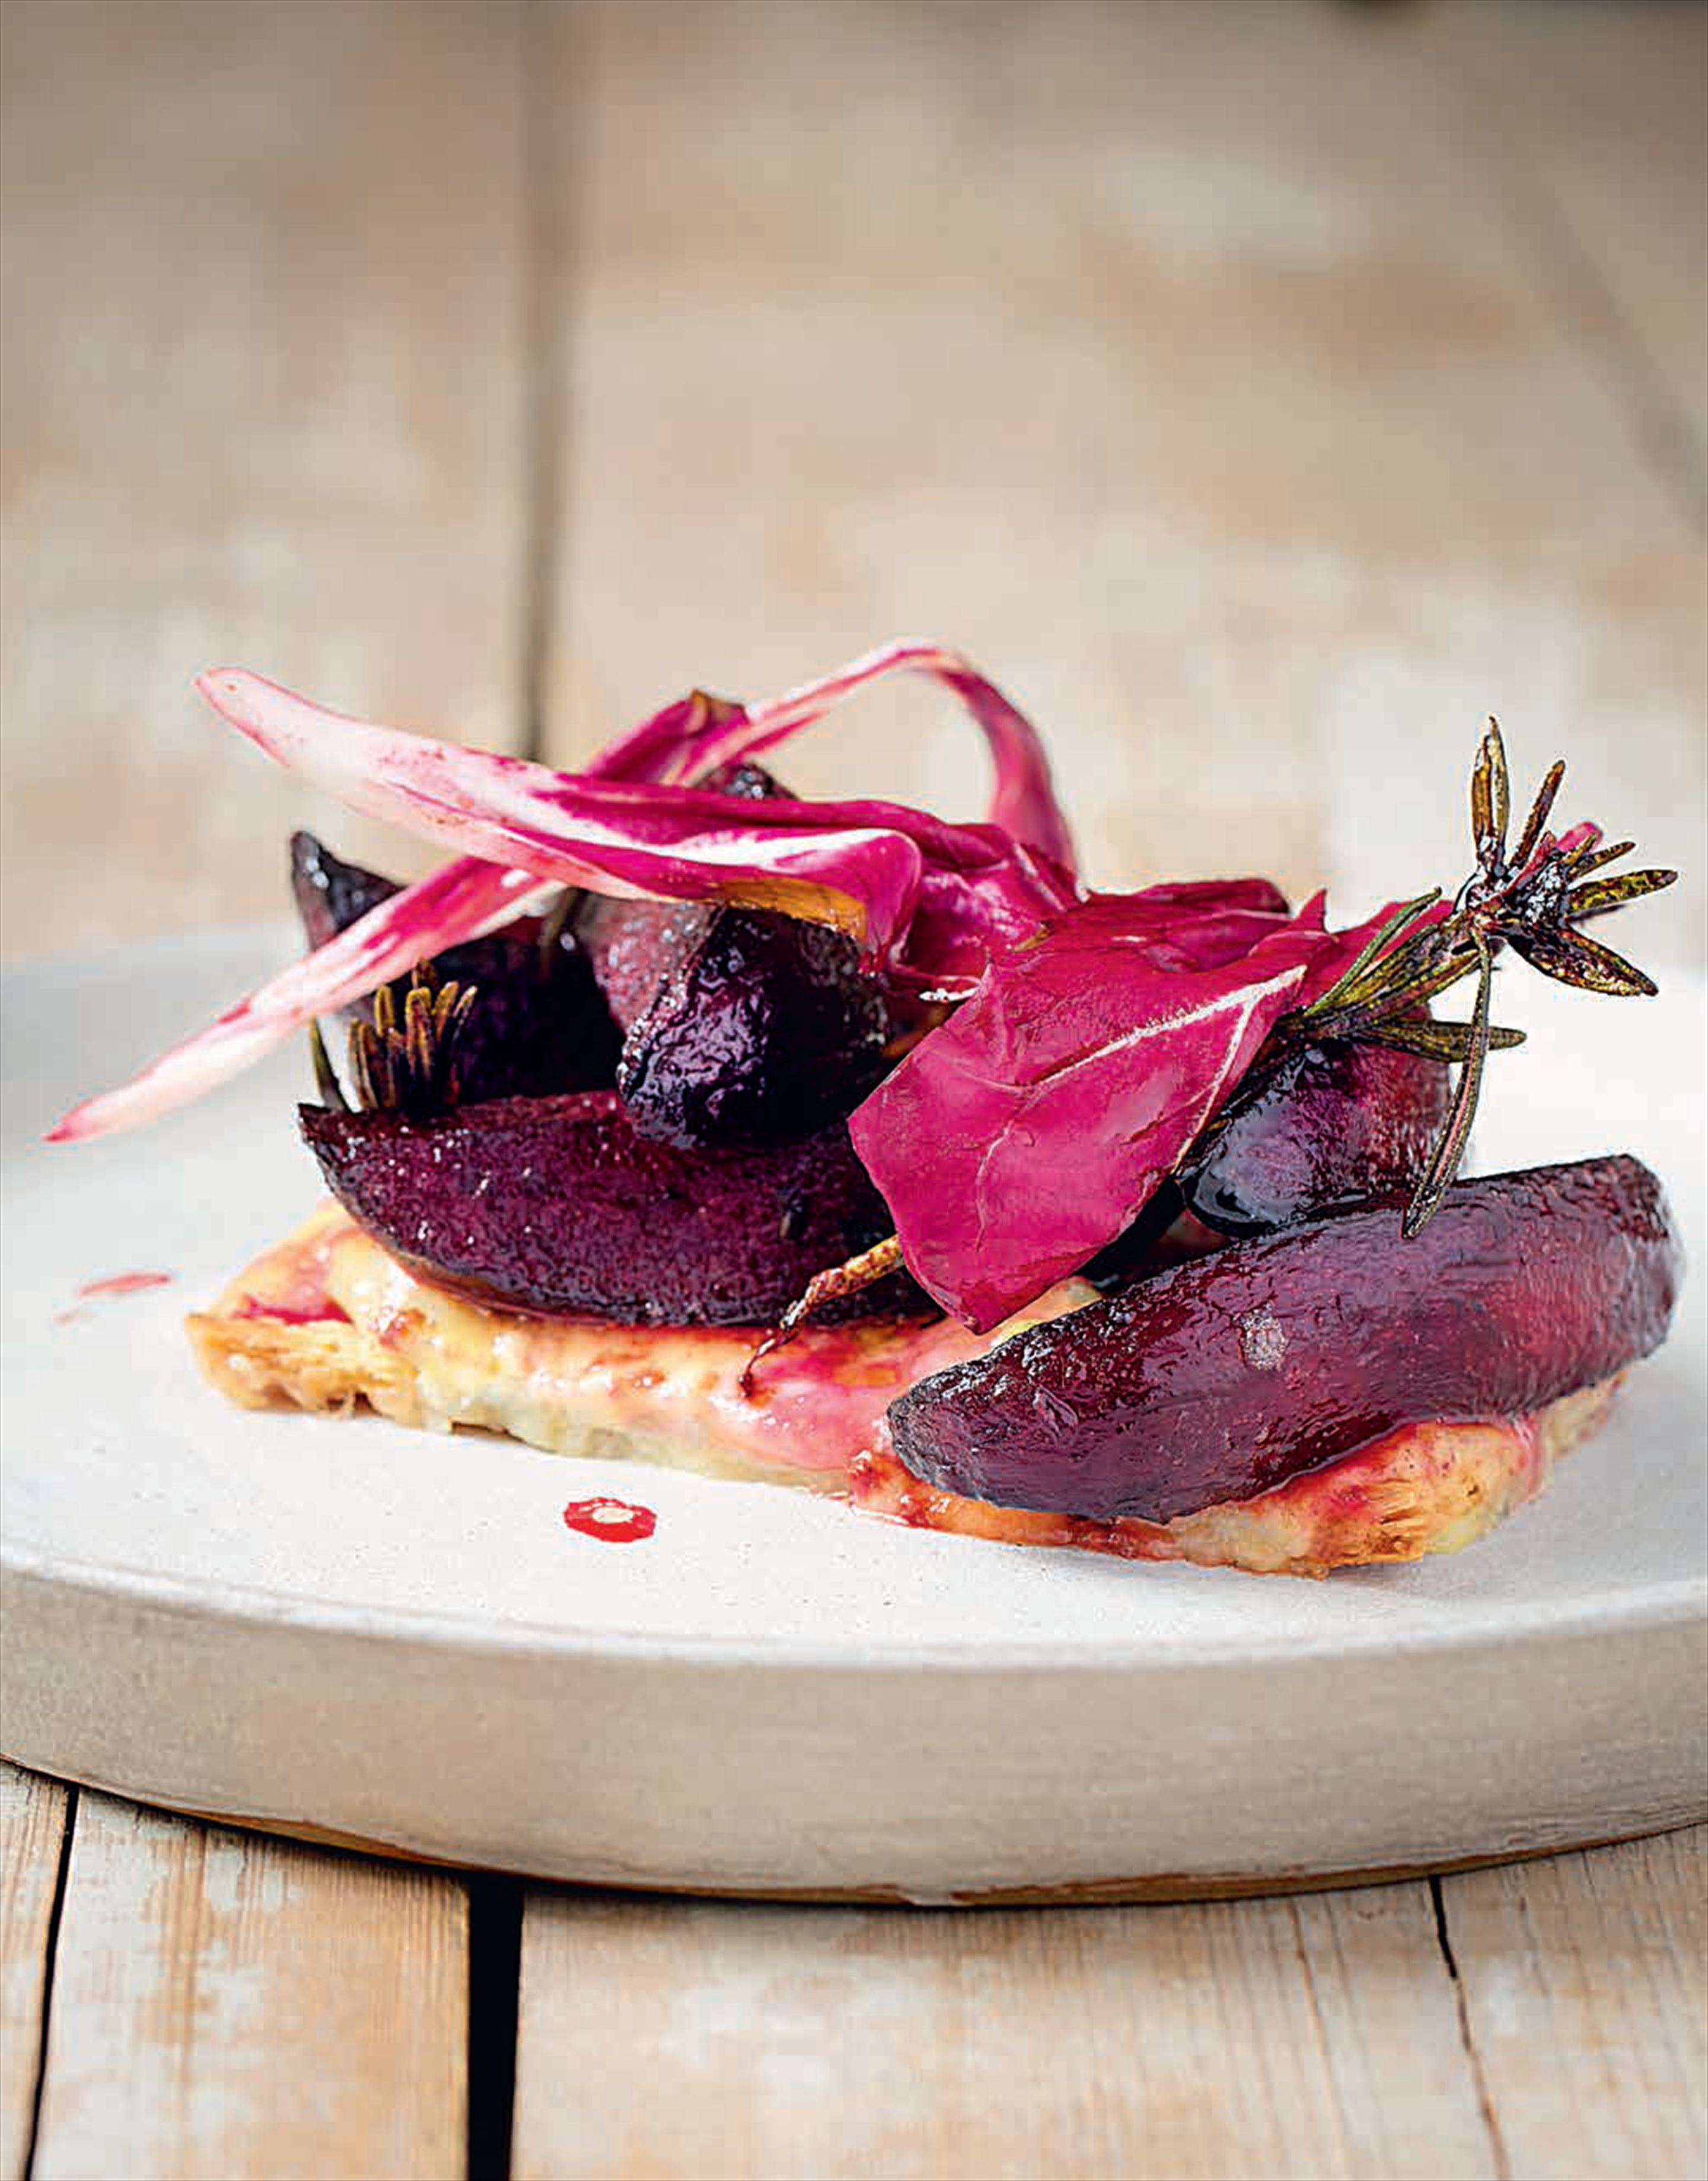 Stilton, puff pastry and beetroot